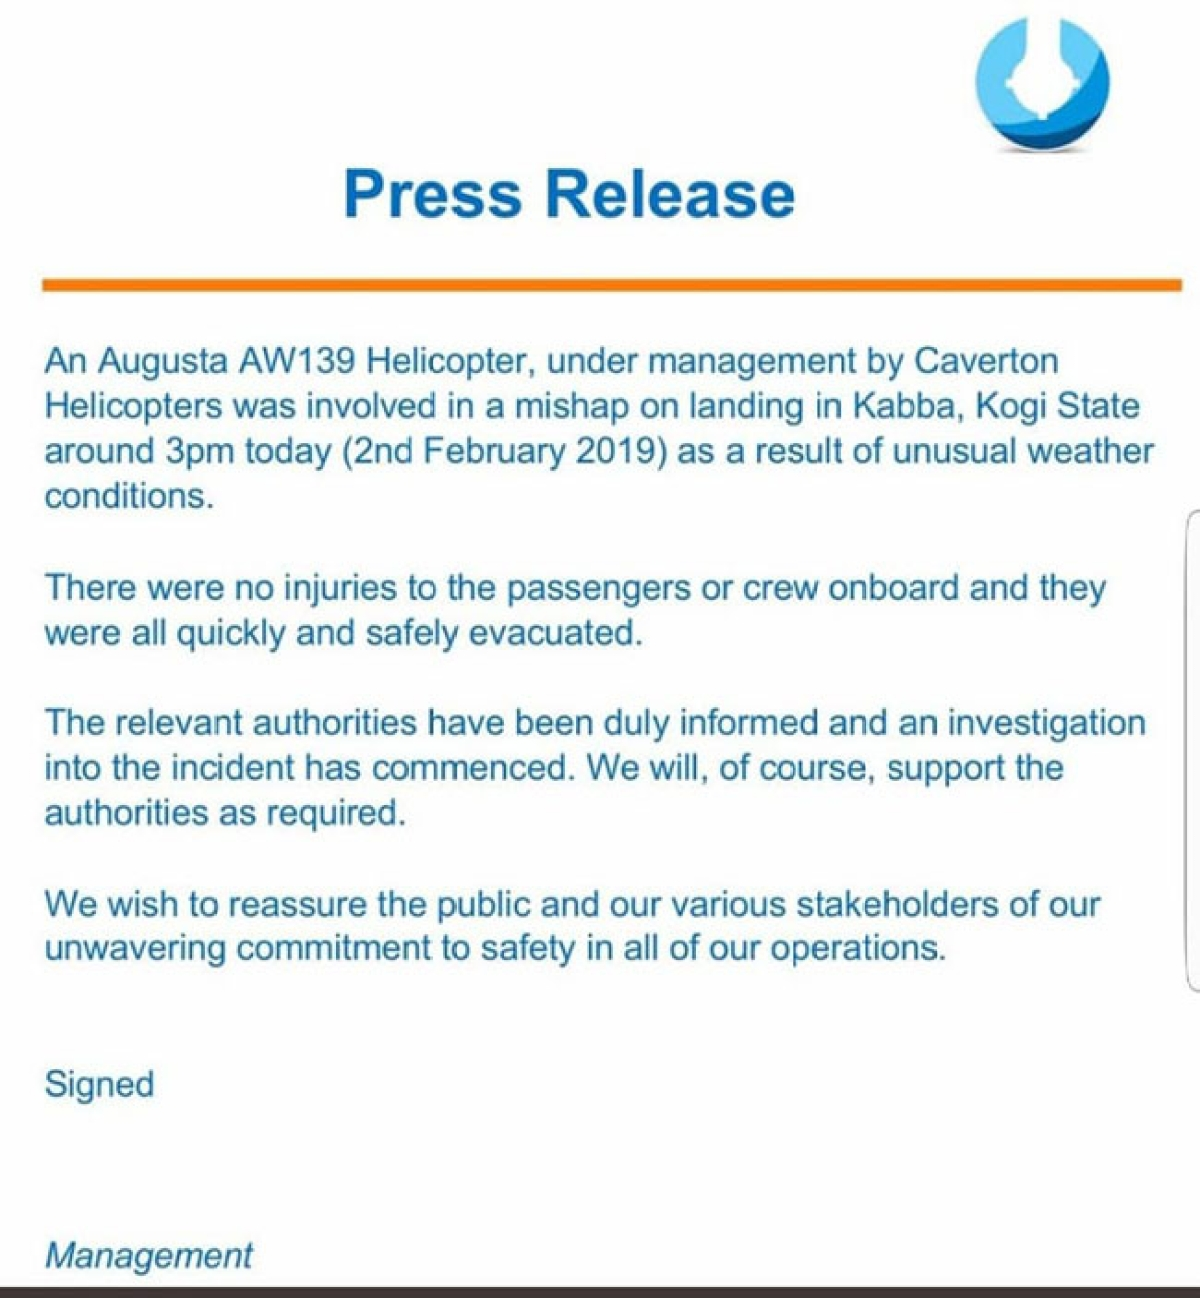 Press Statement from Caverton Helicopter